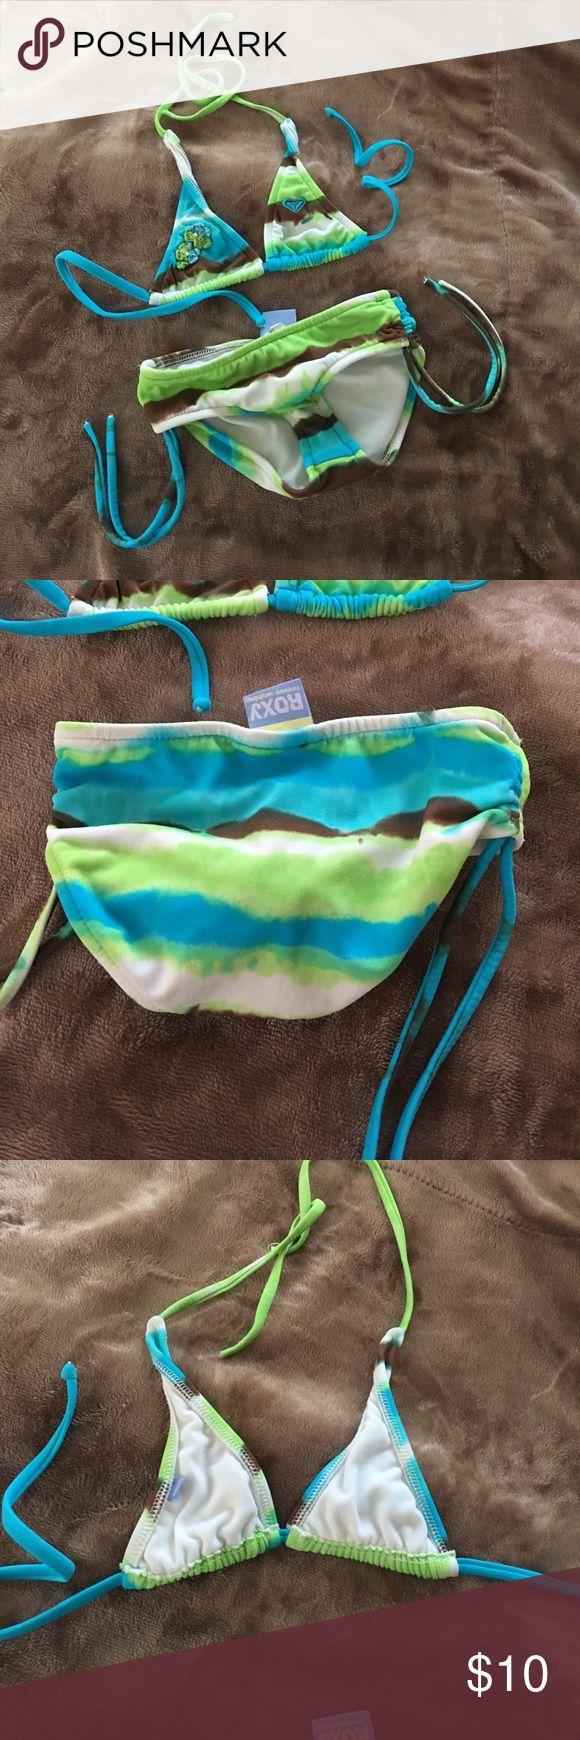 Roxy bathing suit Used but still in good condition. Size 4 fits 12-18 mos best Roxy Swim Bikinis